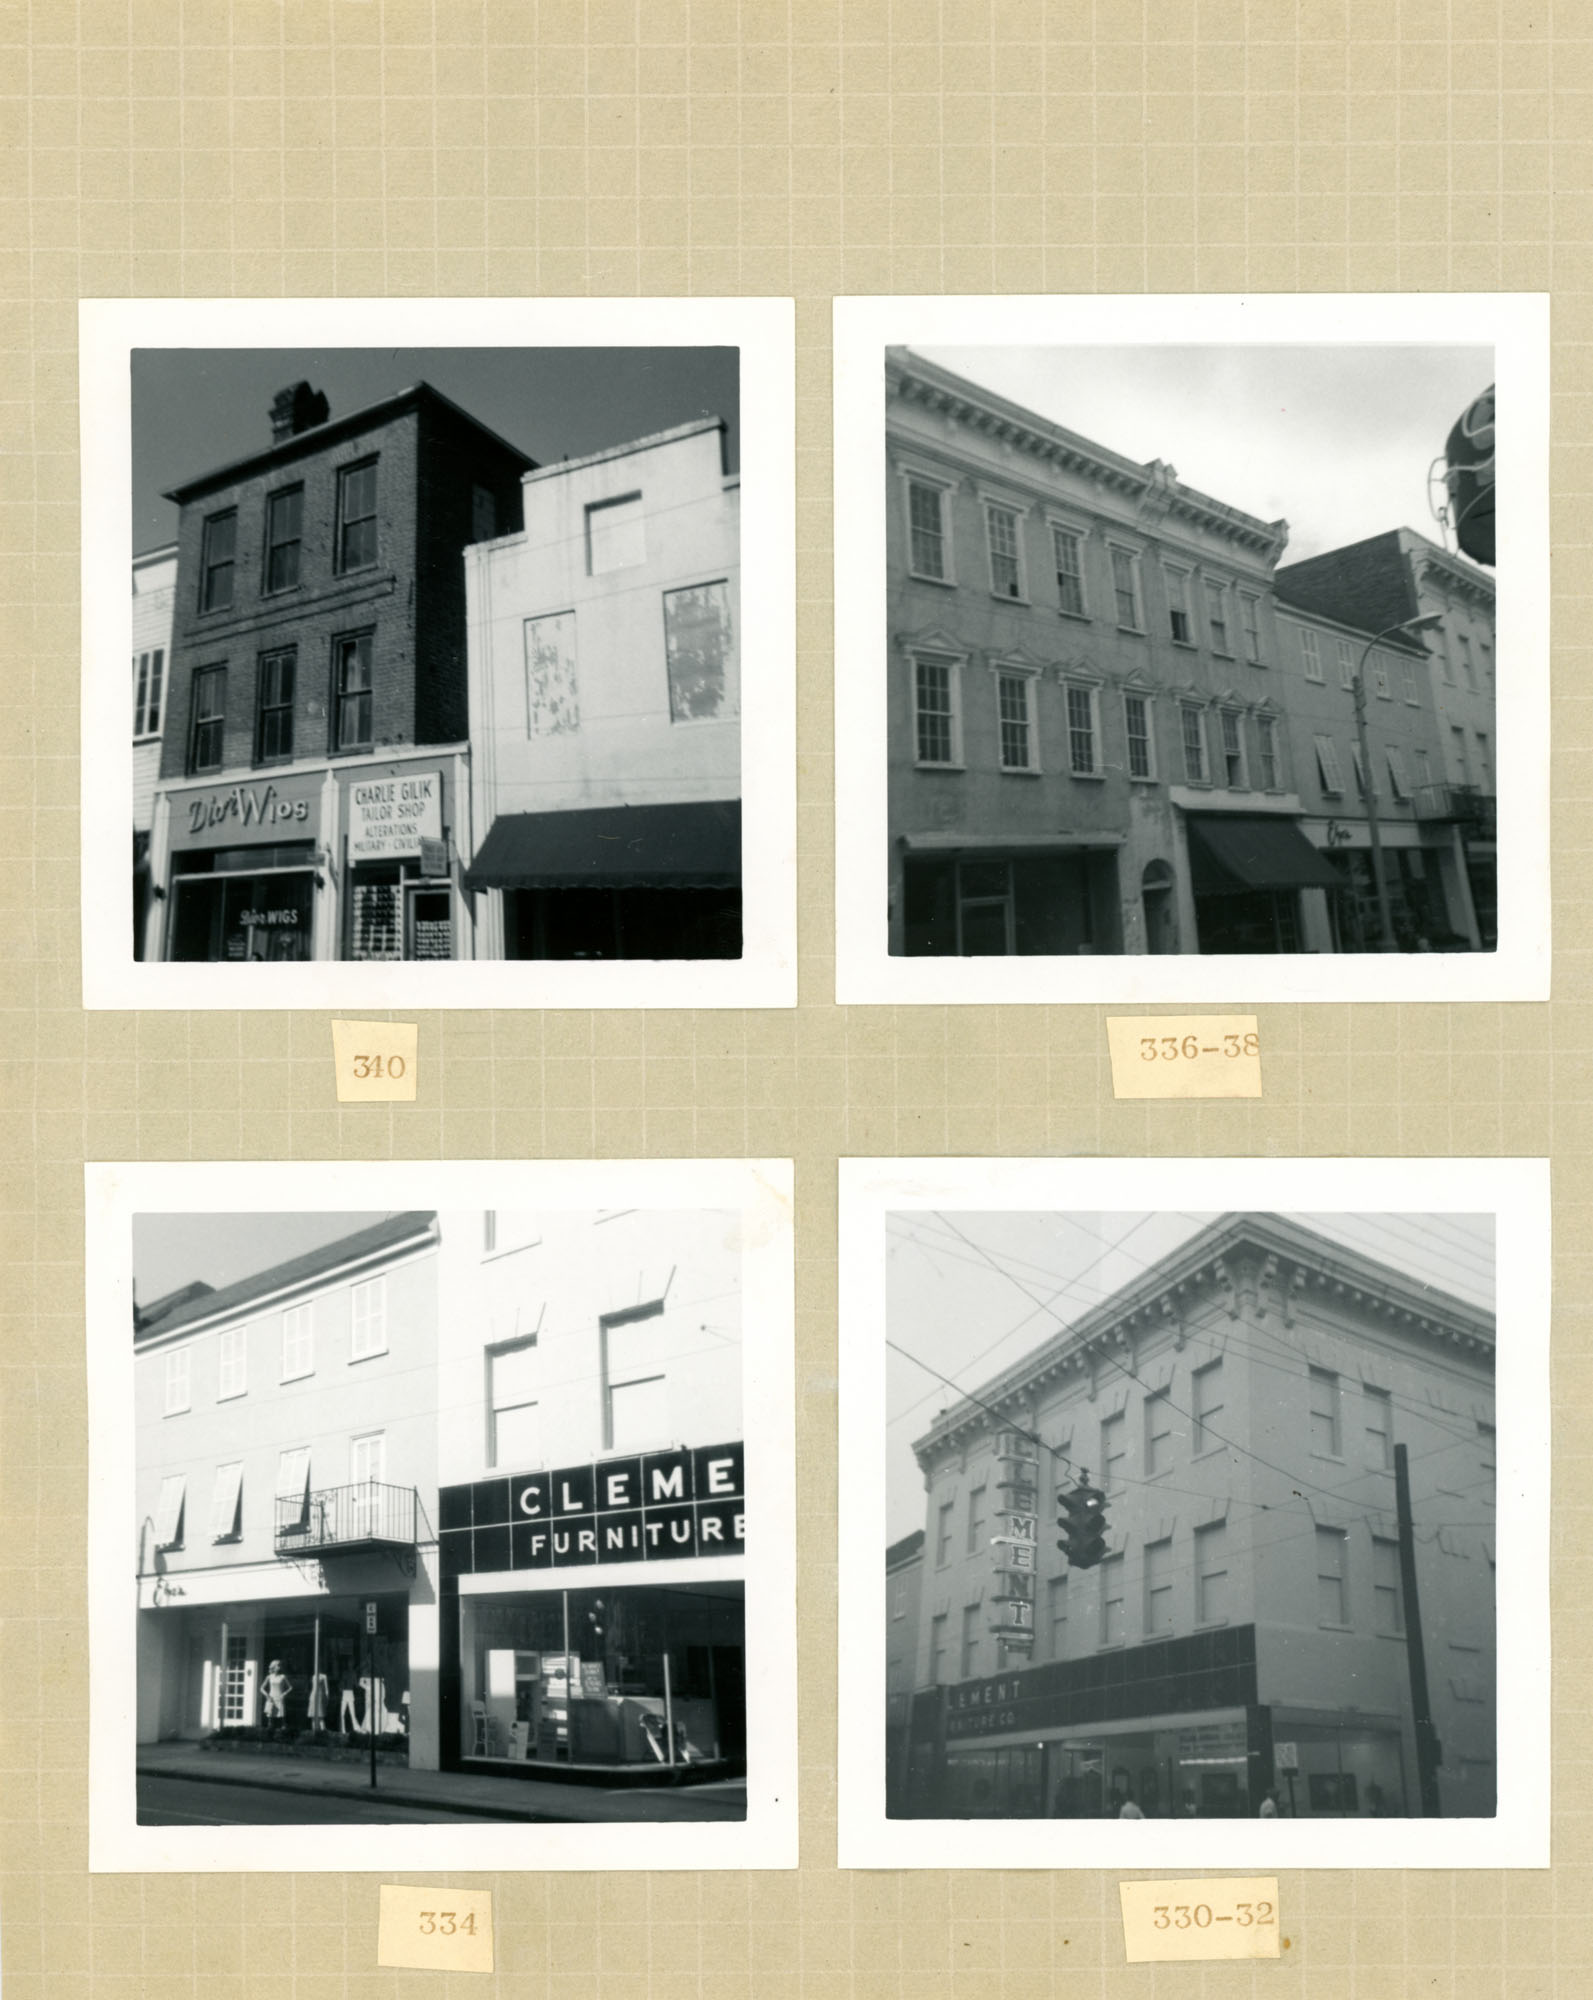 King Street Survey Photo Album, Page 11 (front): 330-342 King Street